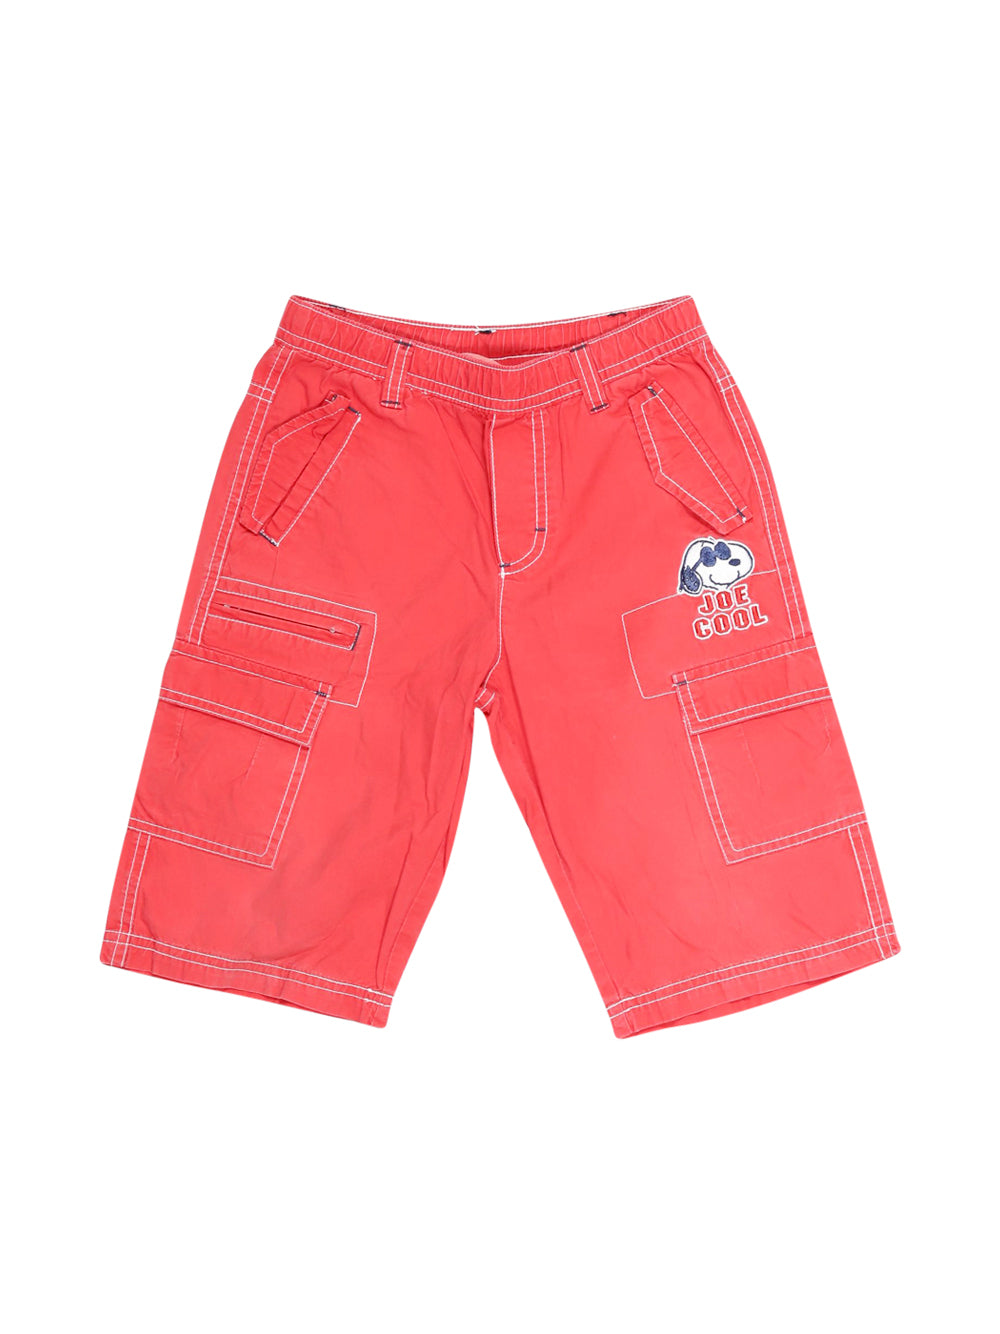 Front photo of Preloved Snoopy Red Boy's shorts - size 4-5 yrs